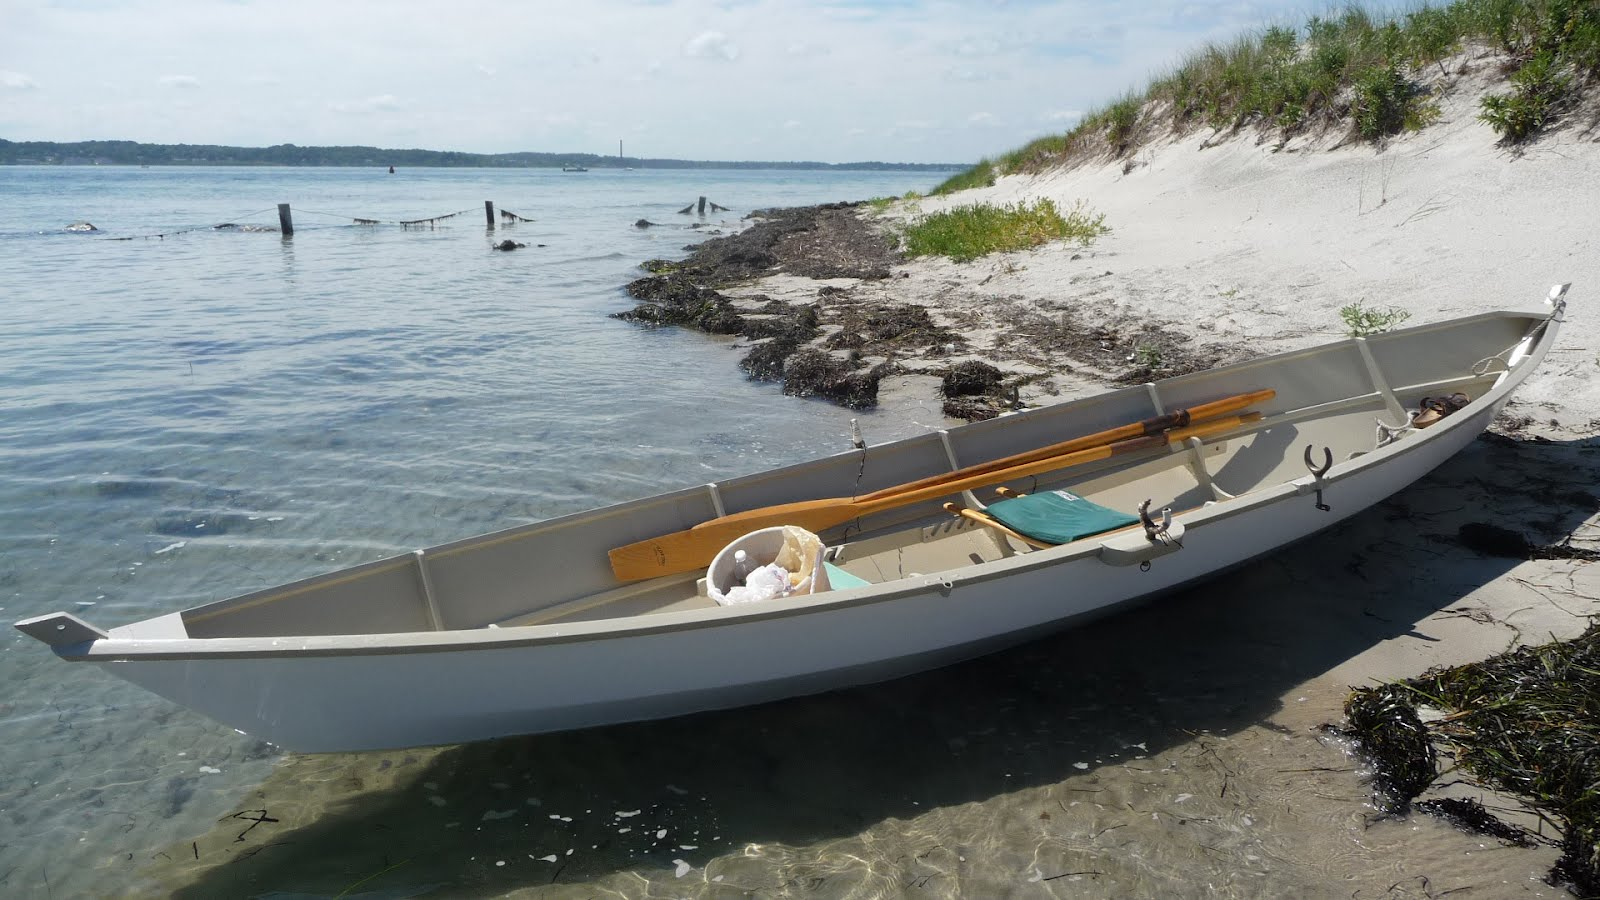 Timotty: Free access Build a sailing dory